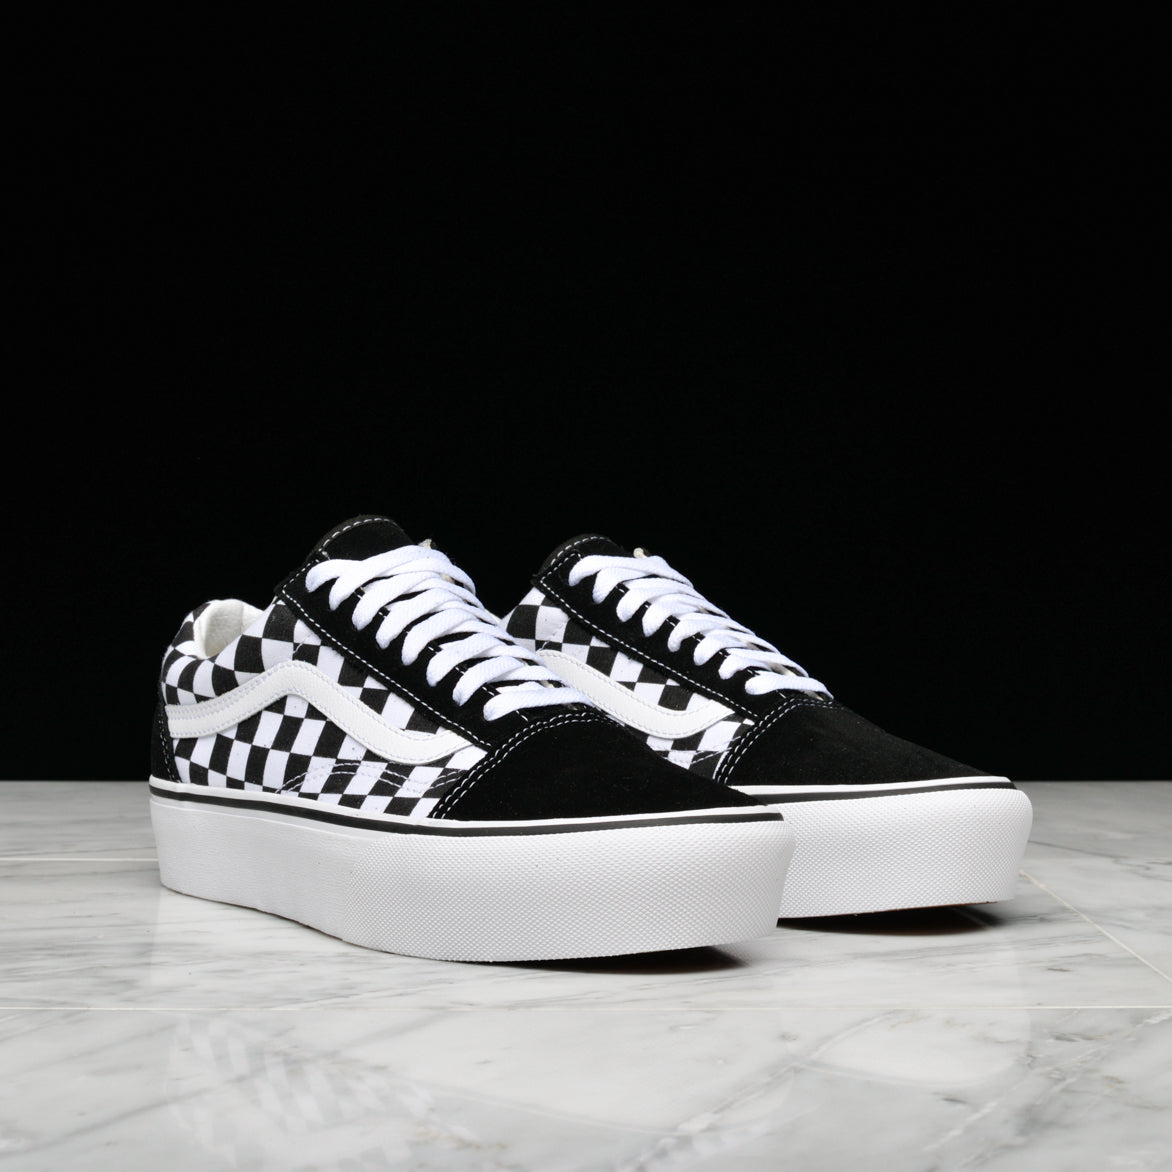 92a17a54935 ... OLD SKOOL PLATFORM CHECKERBOARD - BLACK   WHITE ...